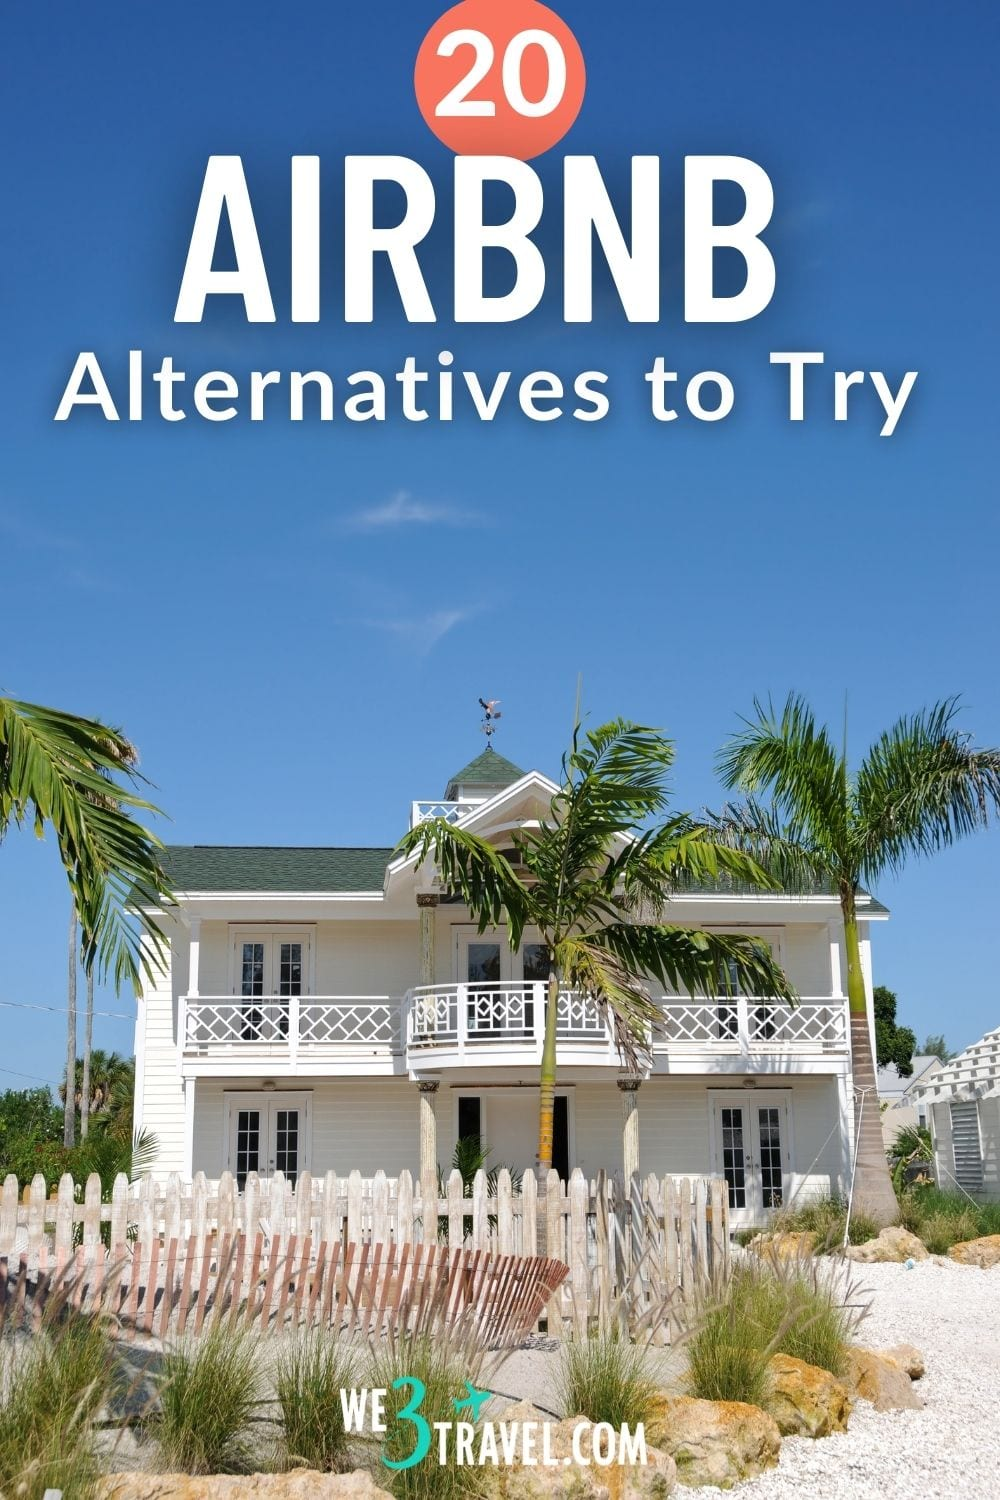 20 Airbnb alternatives to try